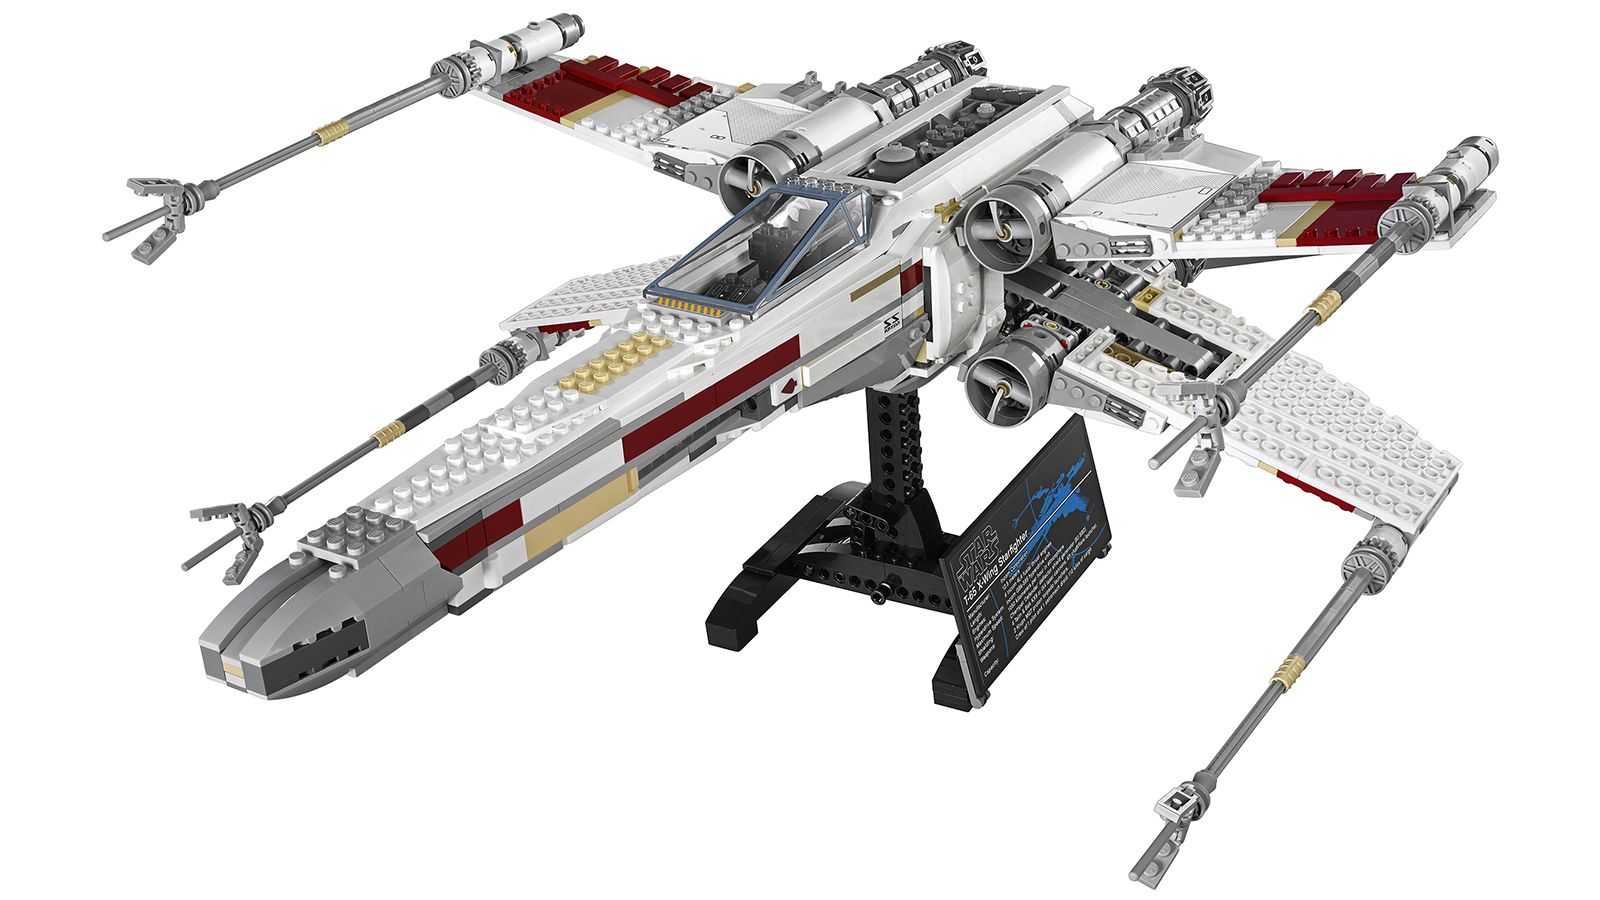 This Is The Most Accurate Lego X Wing Set Ever Lego X Wing Lego Star Wars Sets Lego Star Wars